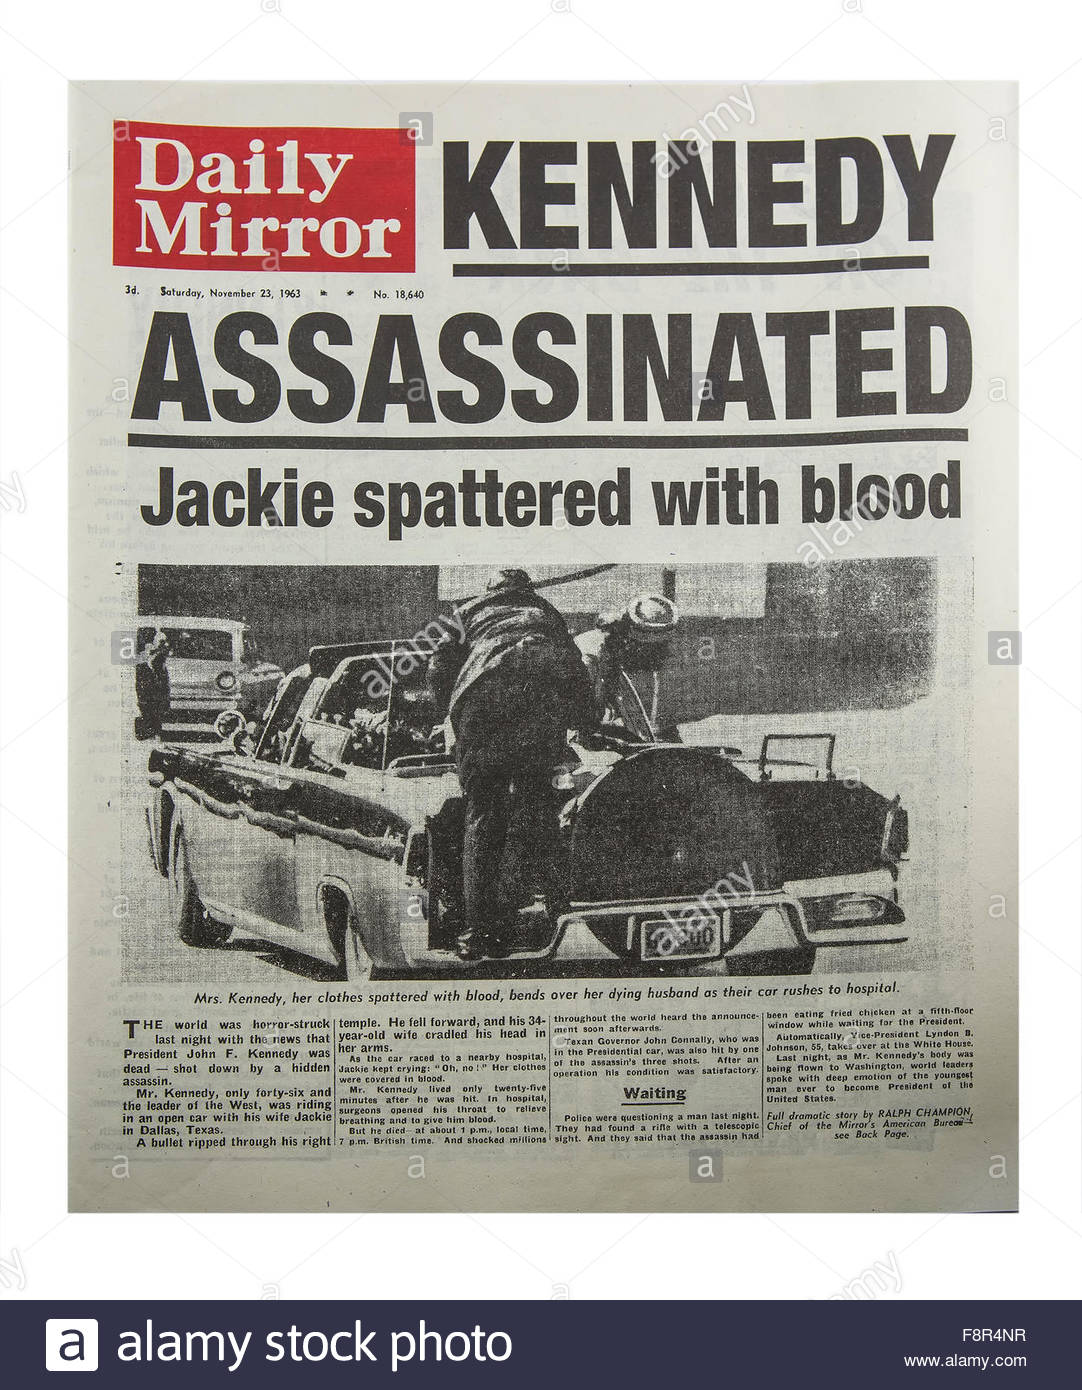 Kennedy Assassinated - 1963 Daily Mirror newspaper of the murder of president John F. Kennedy - Stock Image